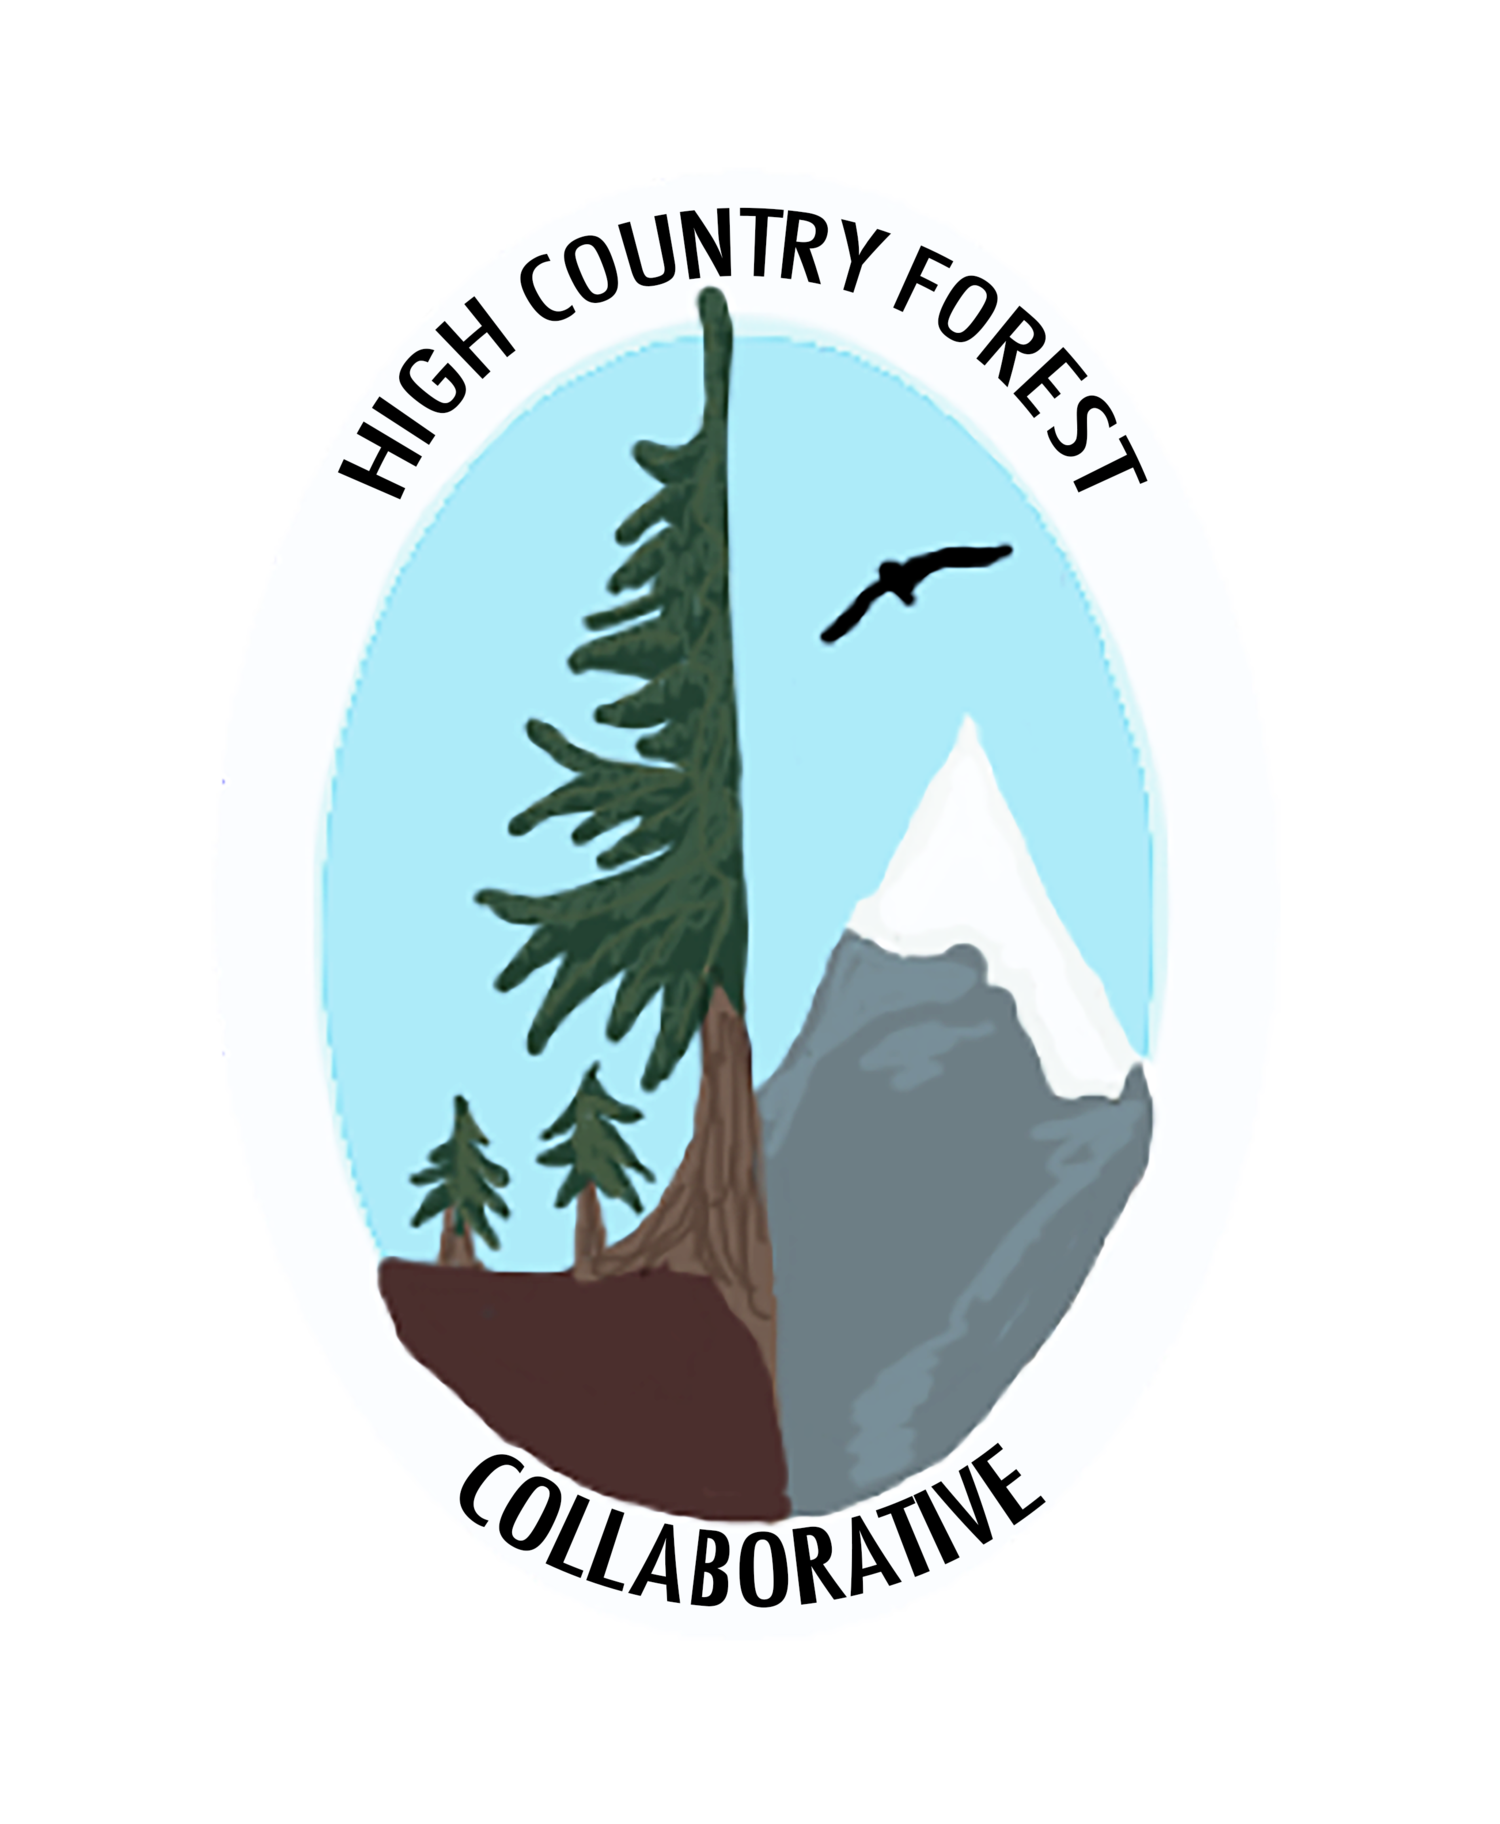 High Country Forest Collaborative